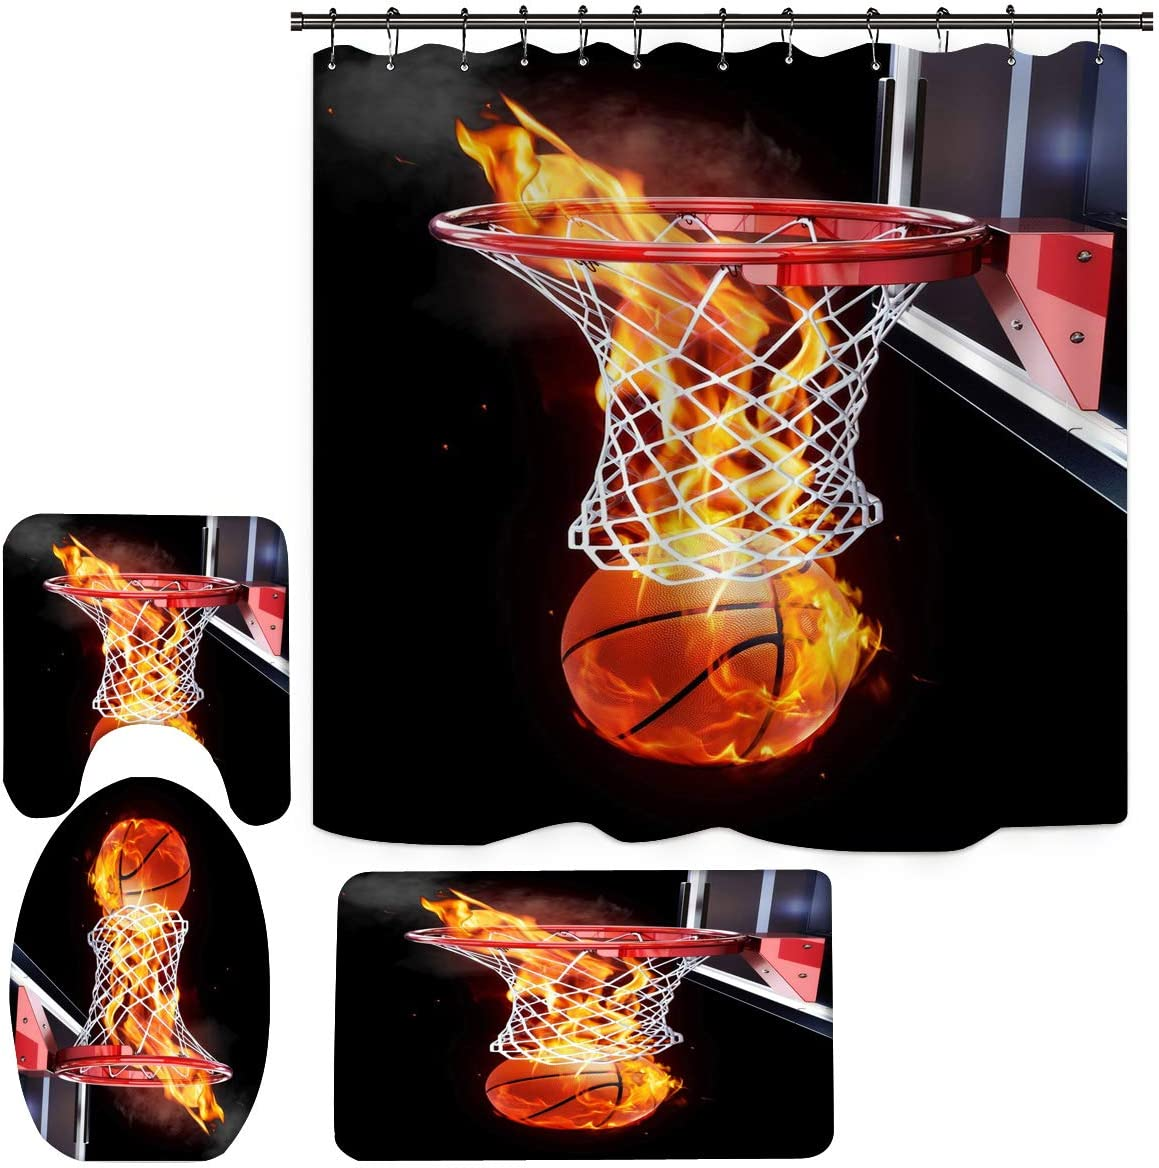 Basketball Shower Curtain, Basketball Bathroom Set with Non-Slip Toilet Rugs and Bath Mats, Kids Bathroom Decor Sets with 12 Hooks (H8)